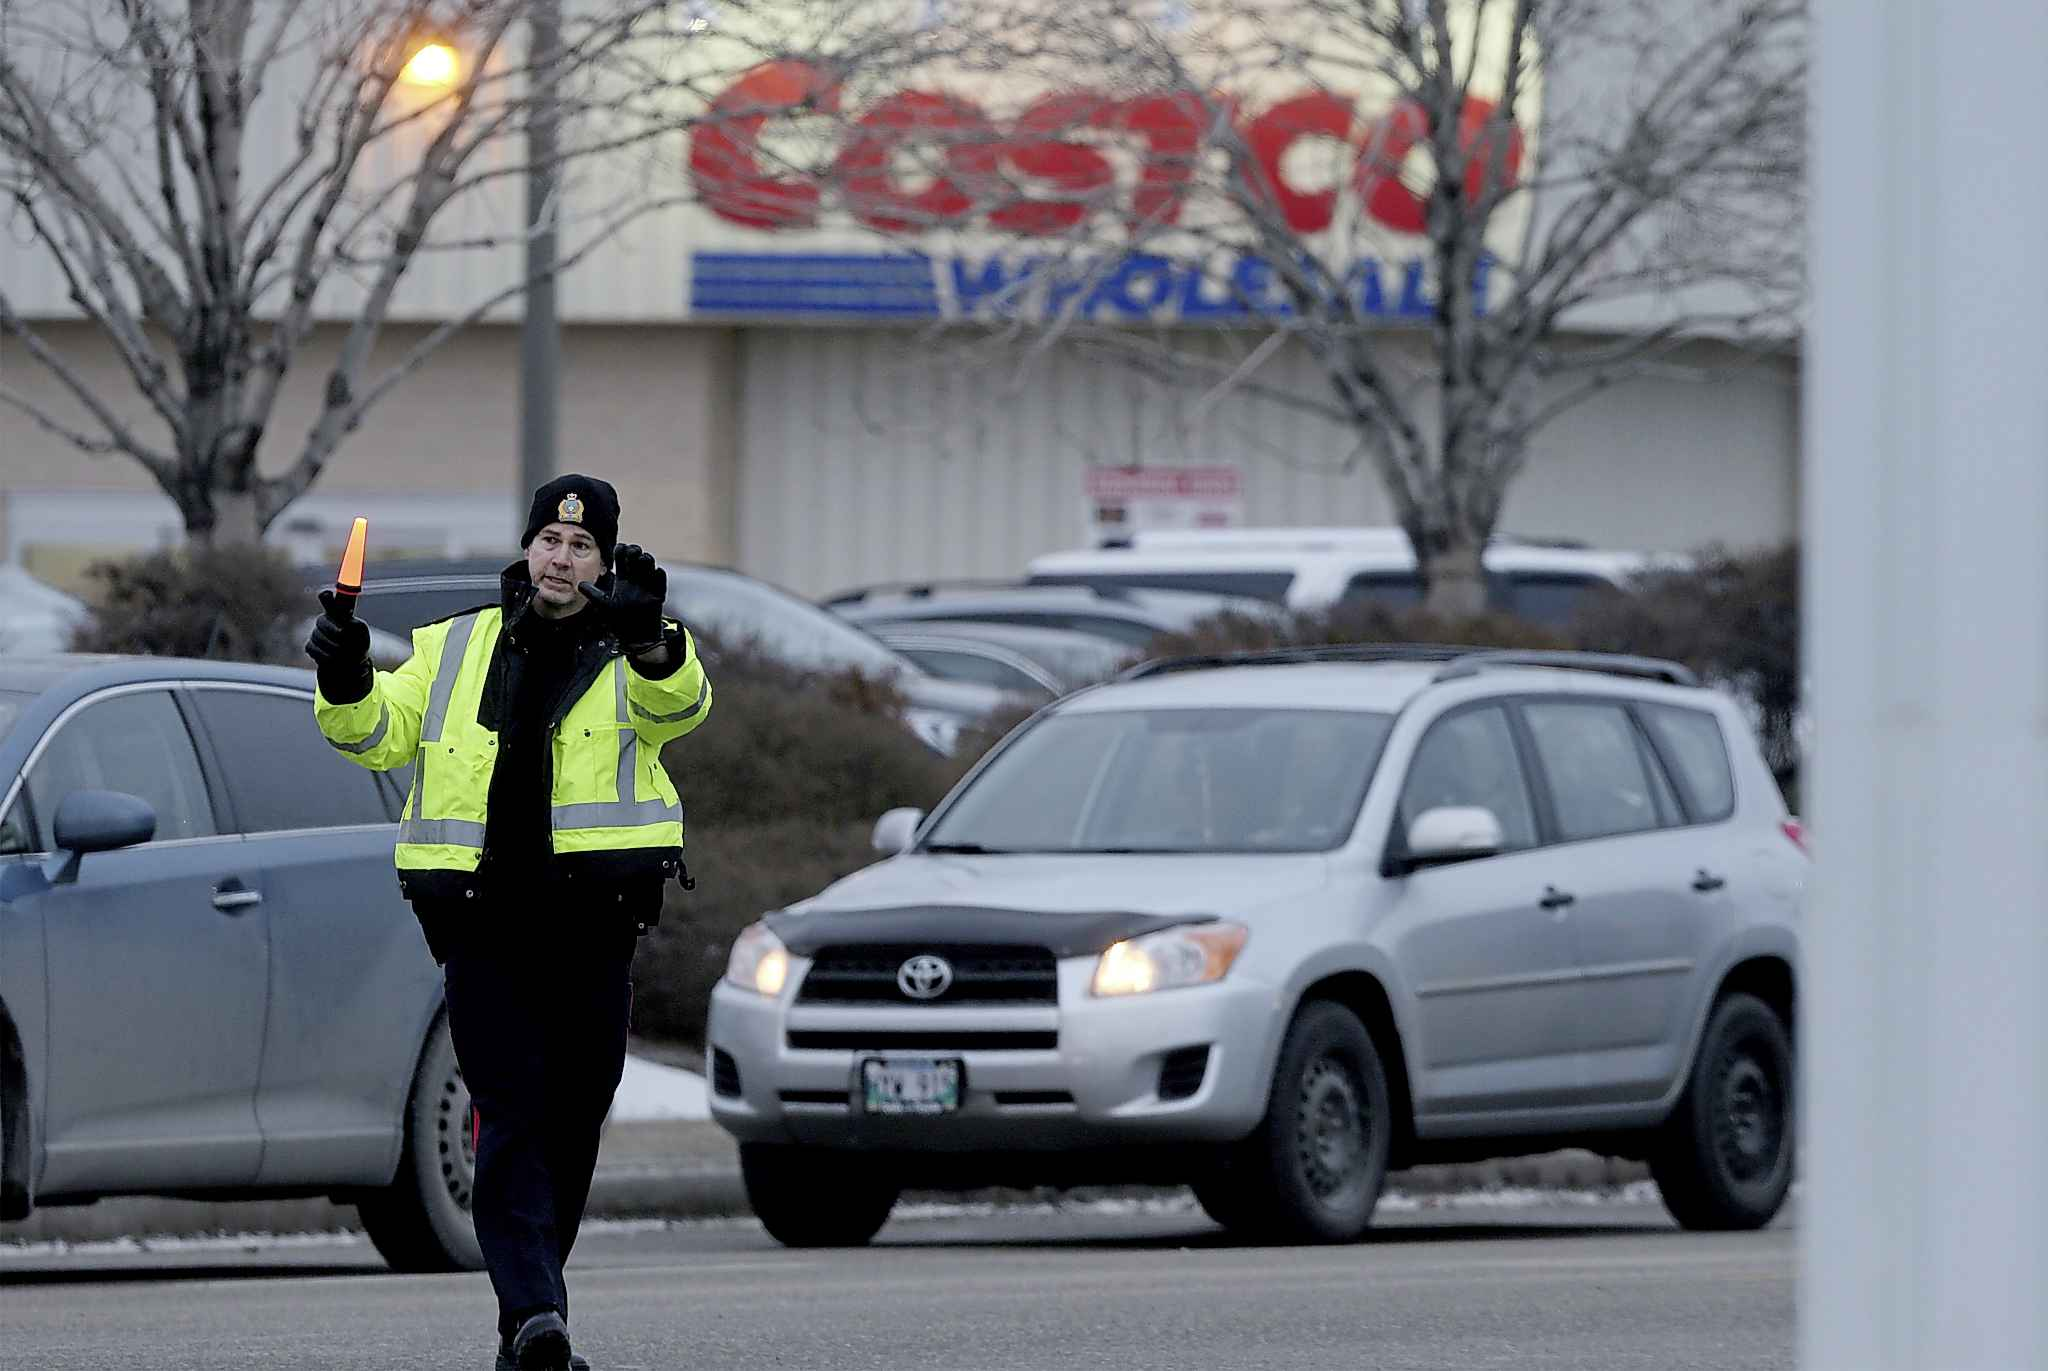 Members of the Winnipeg Police Service direct traffic in front of the St. James Costco store on Black Friday.